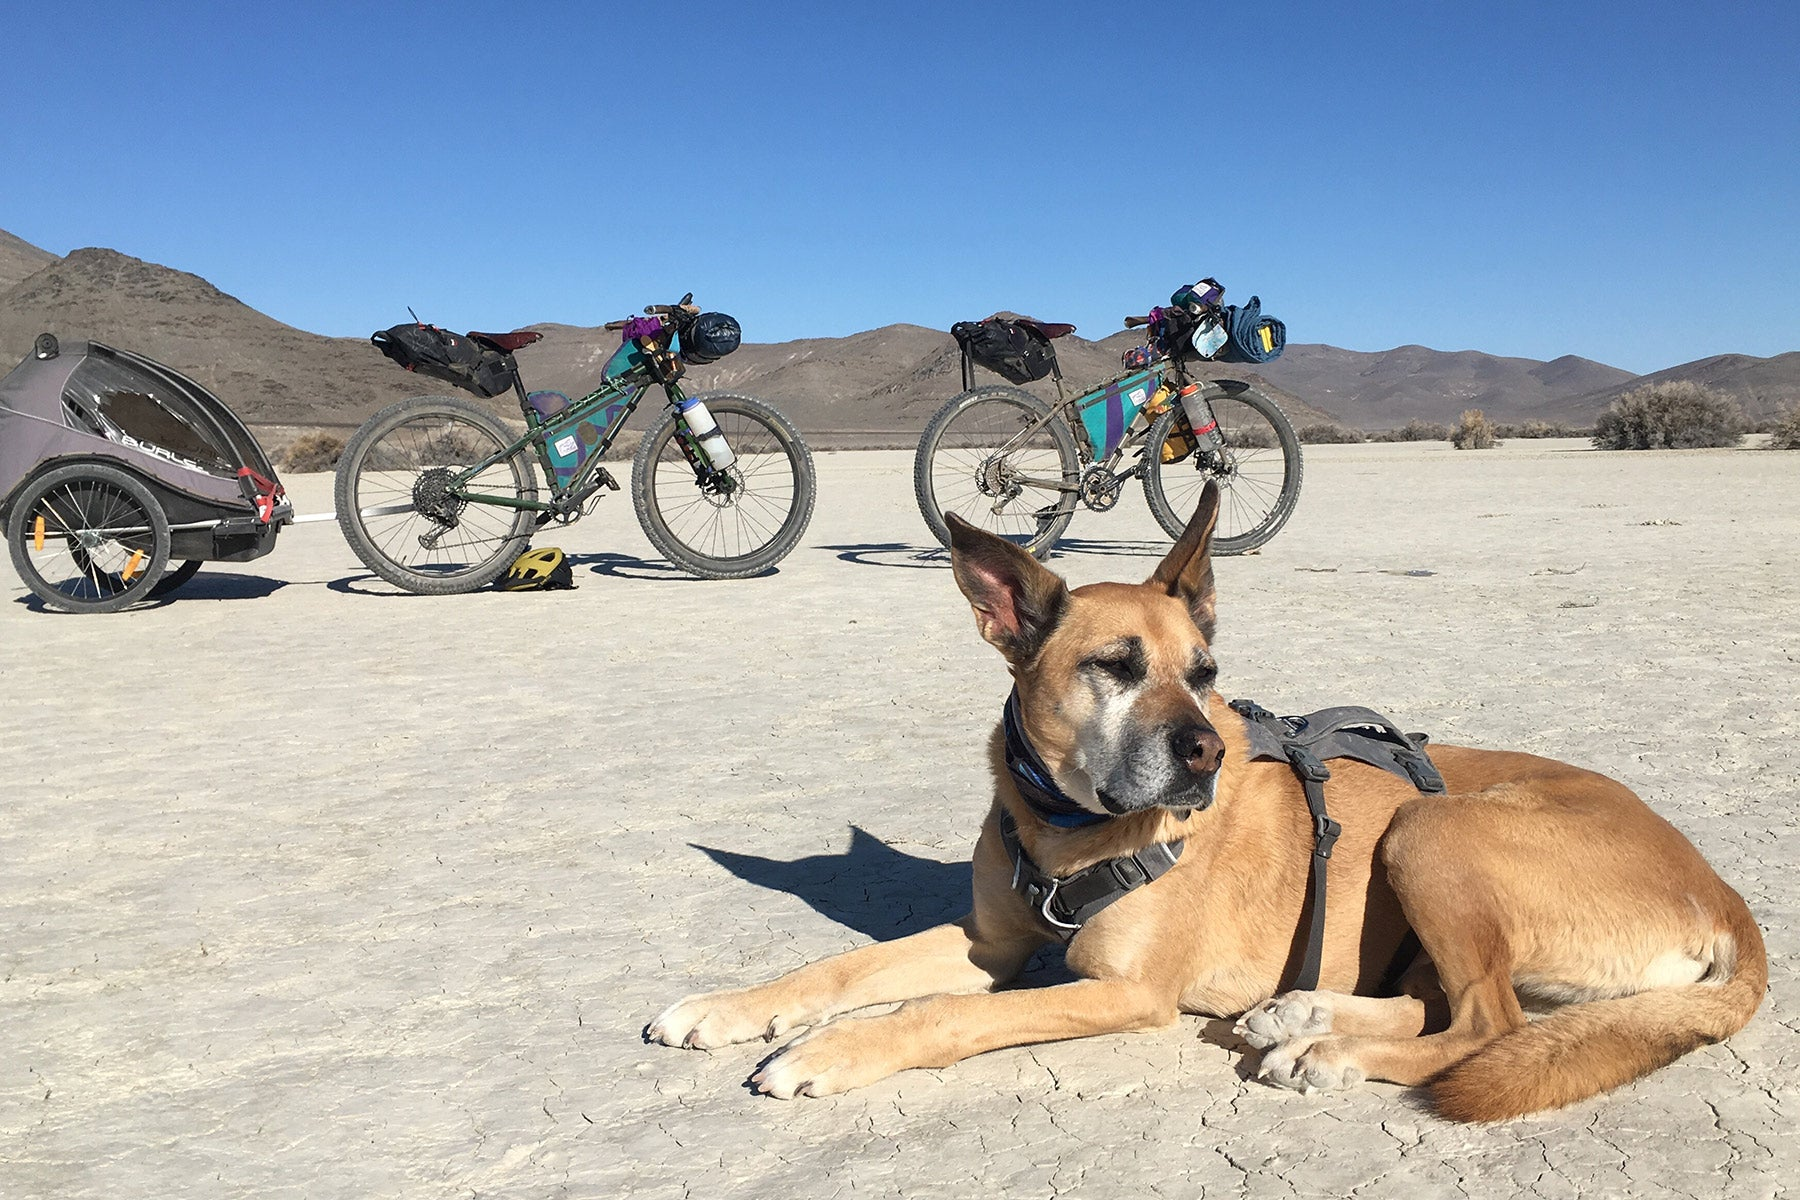 Dog star taking a break on a desert playa with mountain bikes in the background